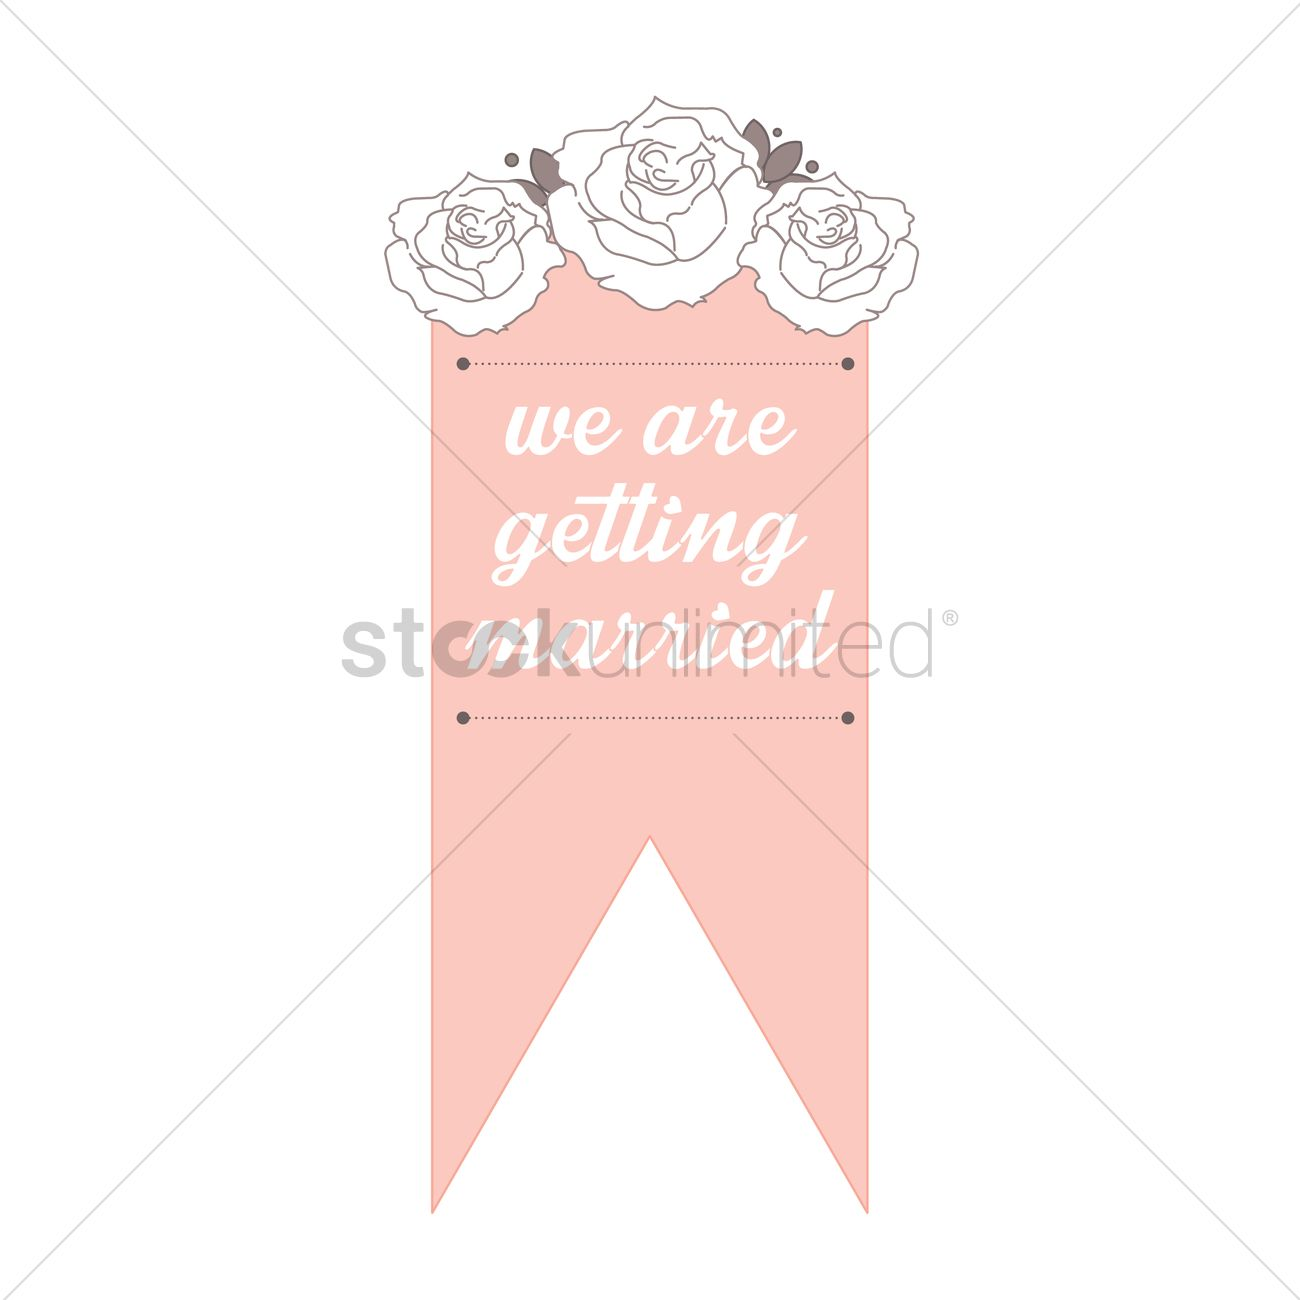 Wedding invitation banner Vector Image - 1789339 | StockUnlimited